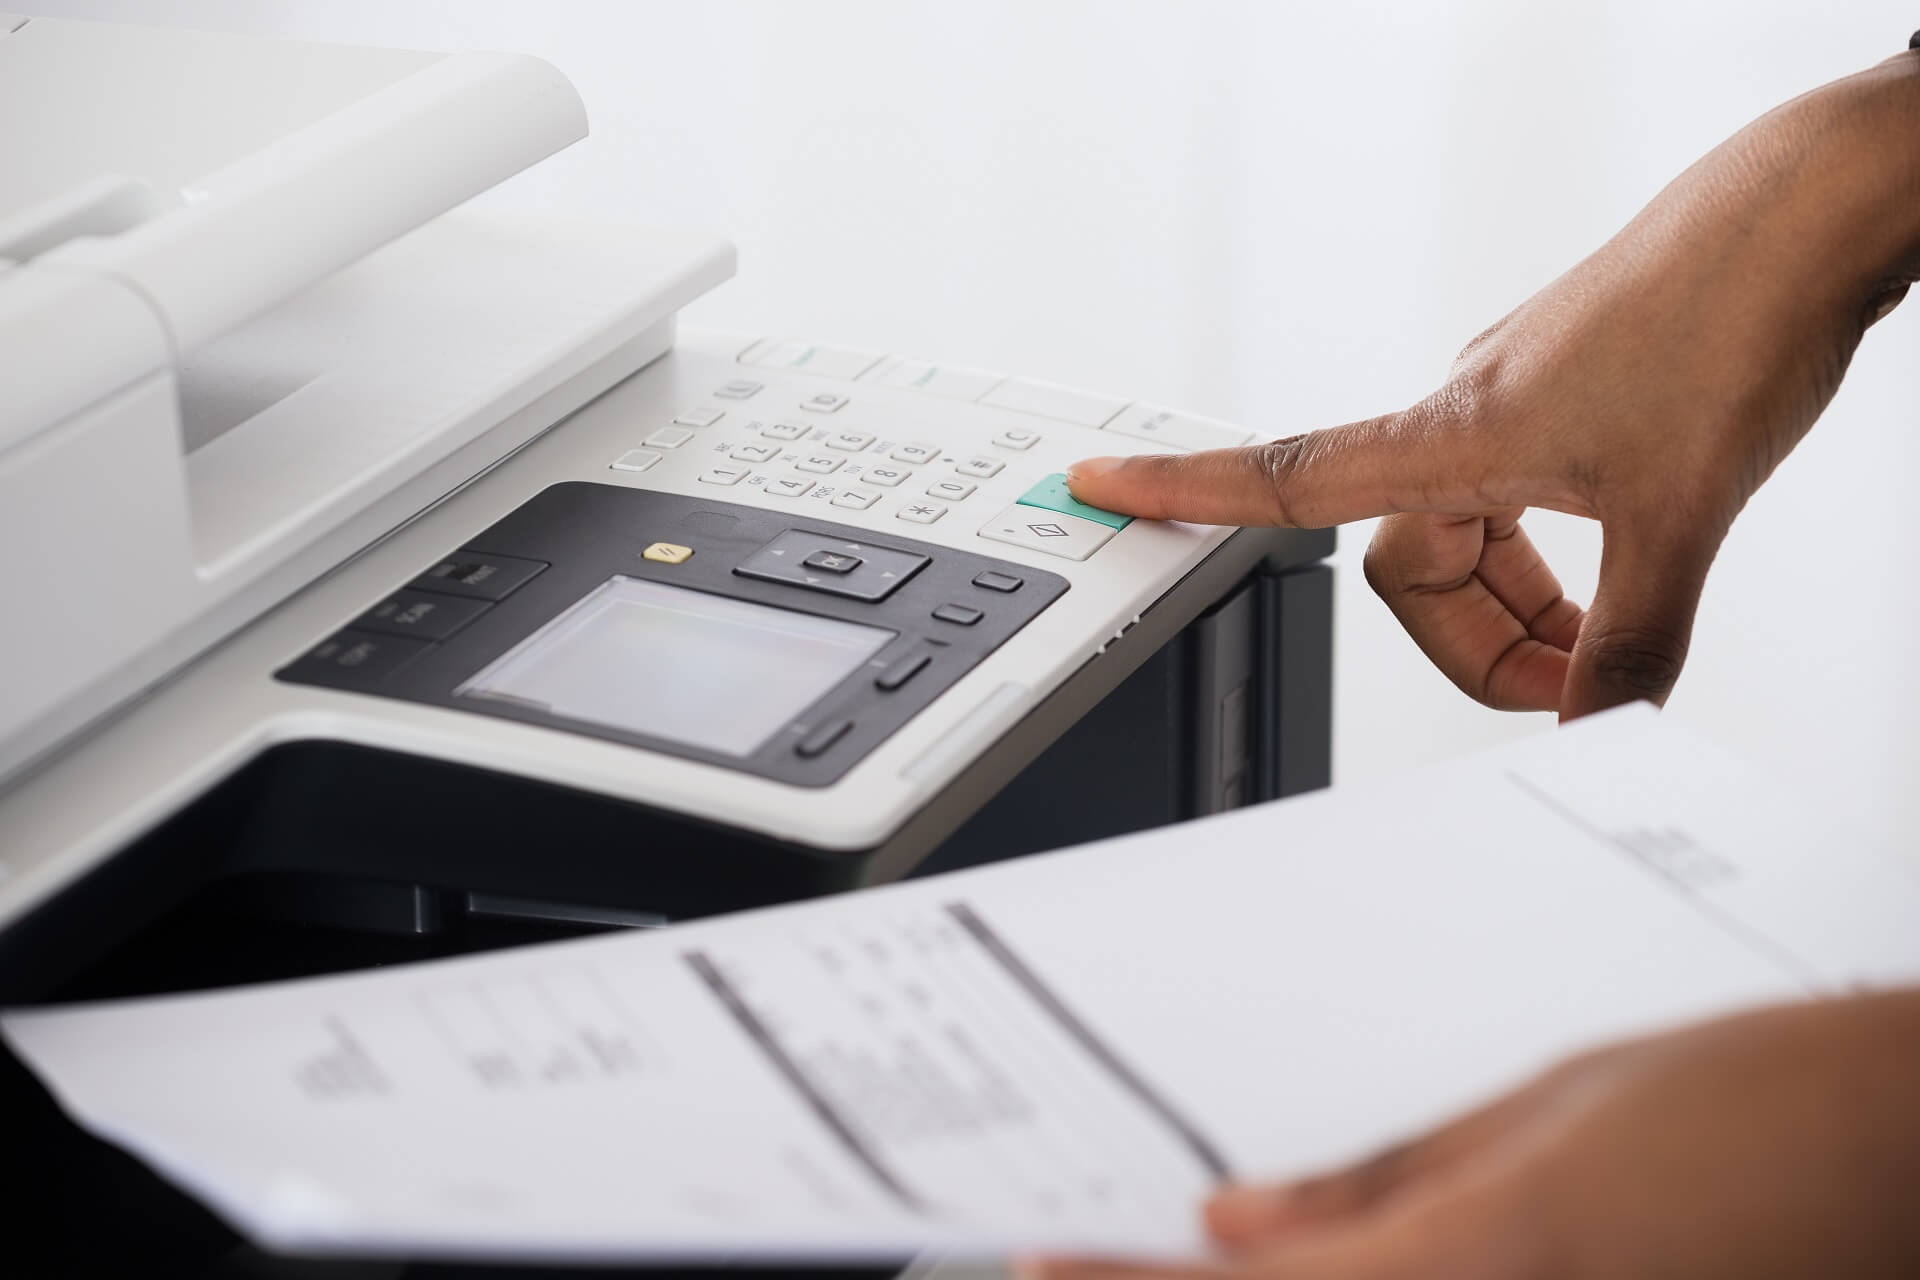 Why is HP printer printing blank pages?